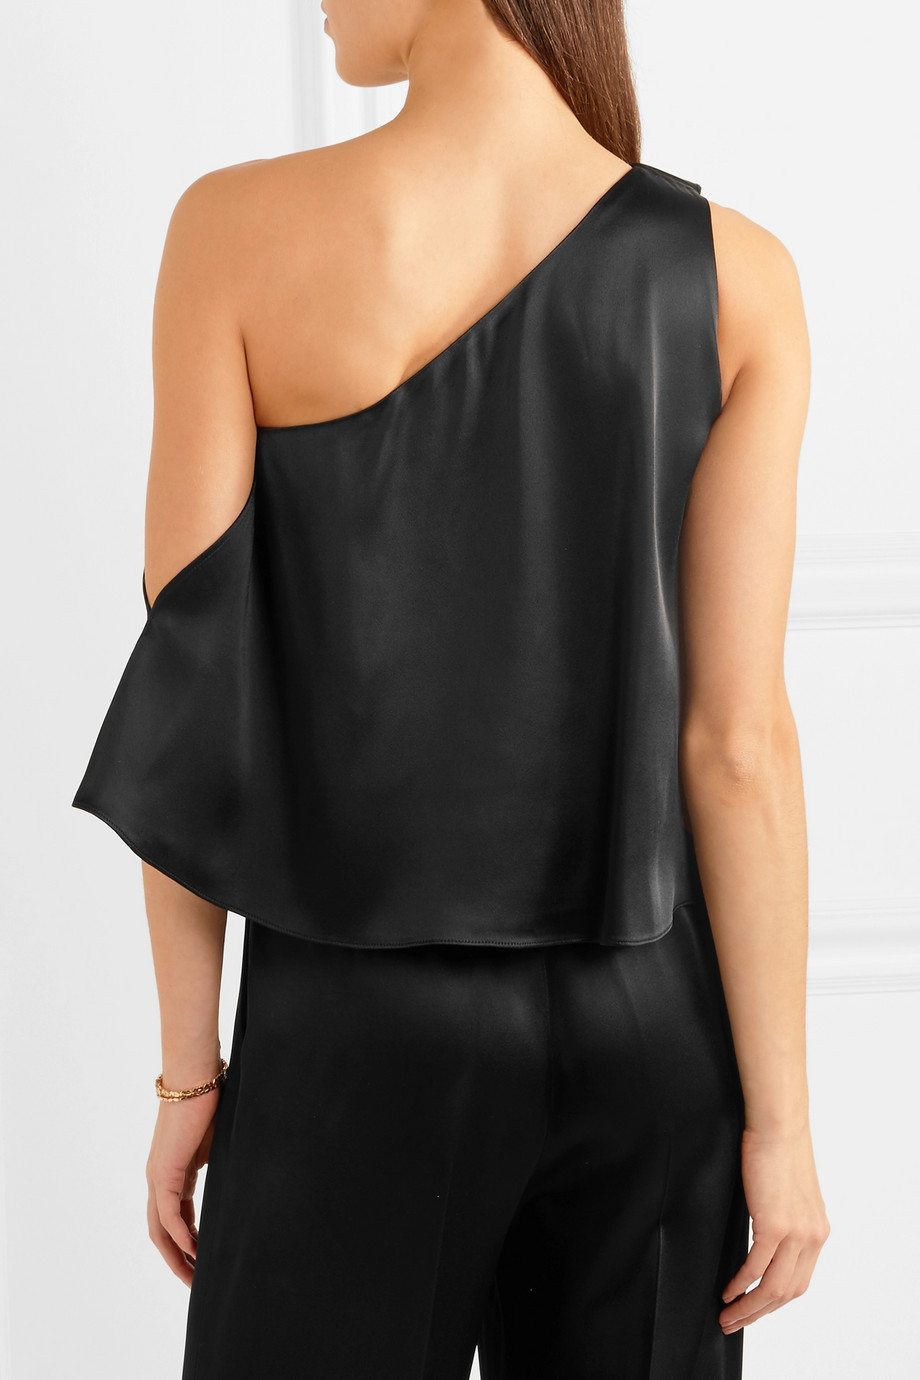 Satin blouse Stella McCartney buy Satin blouse Stella McCartney internet shop